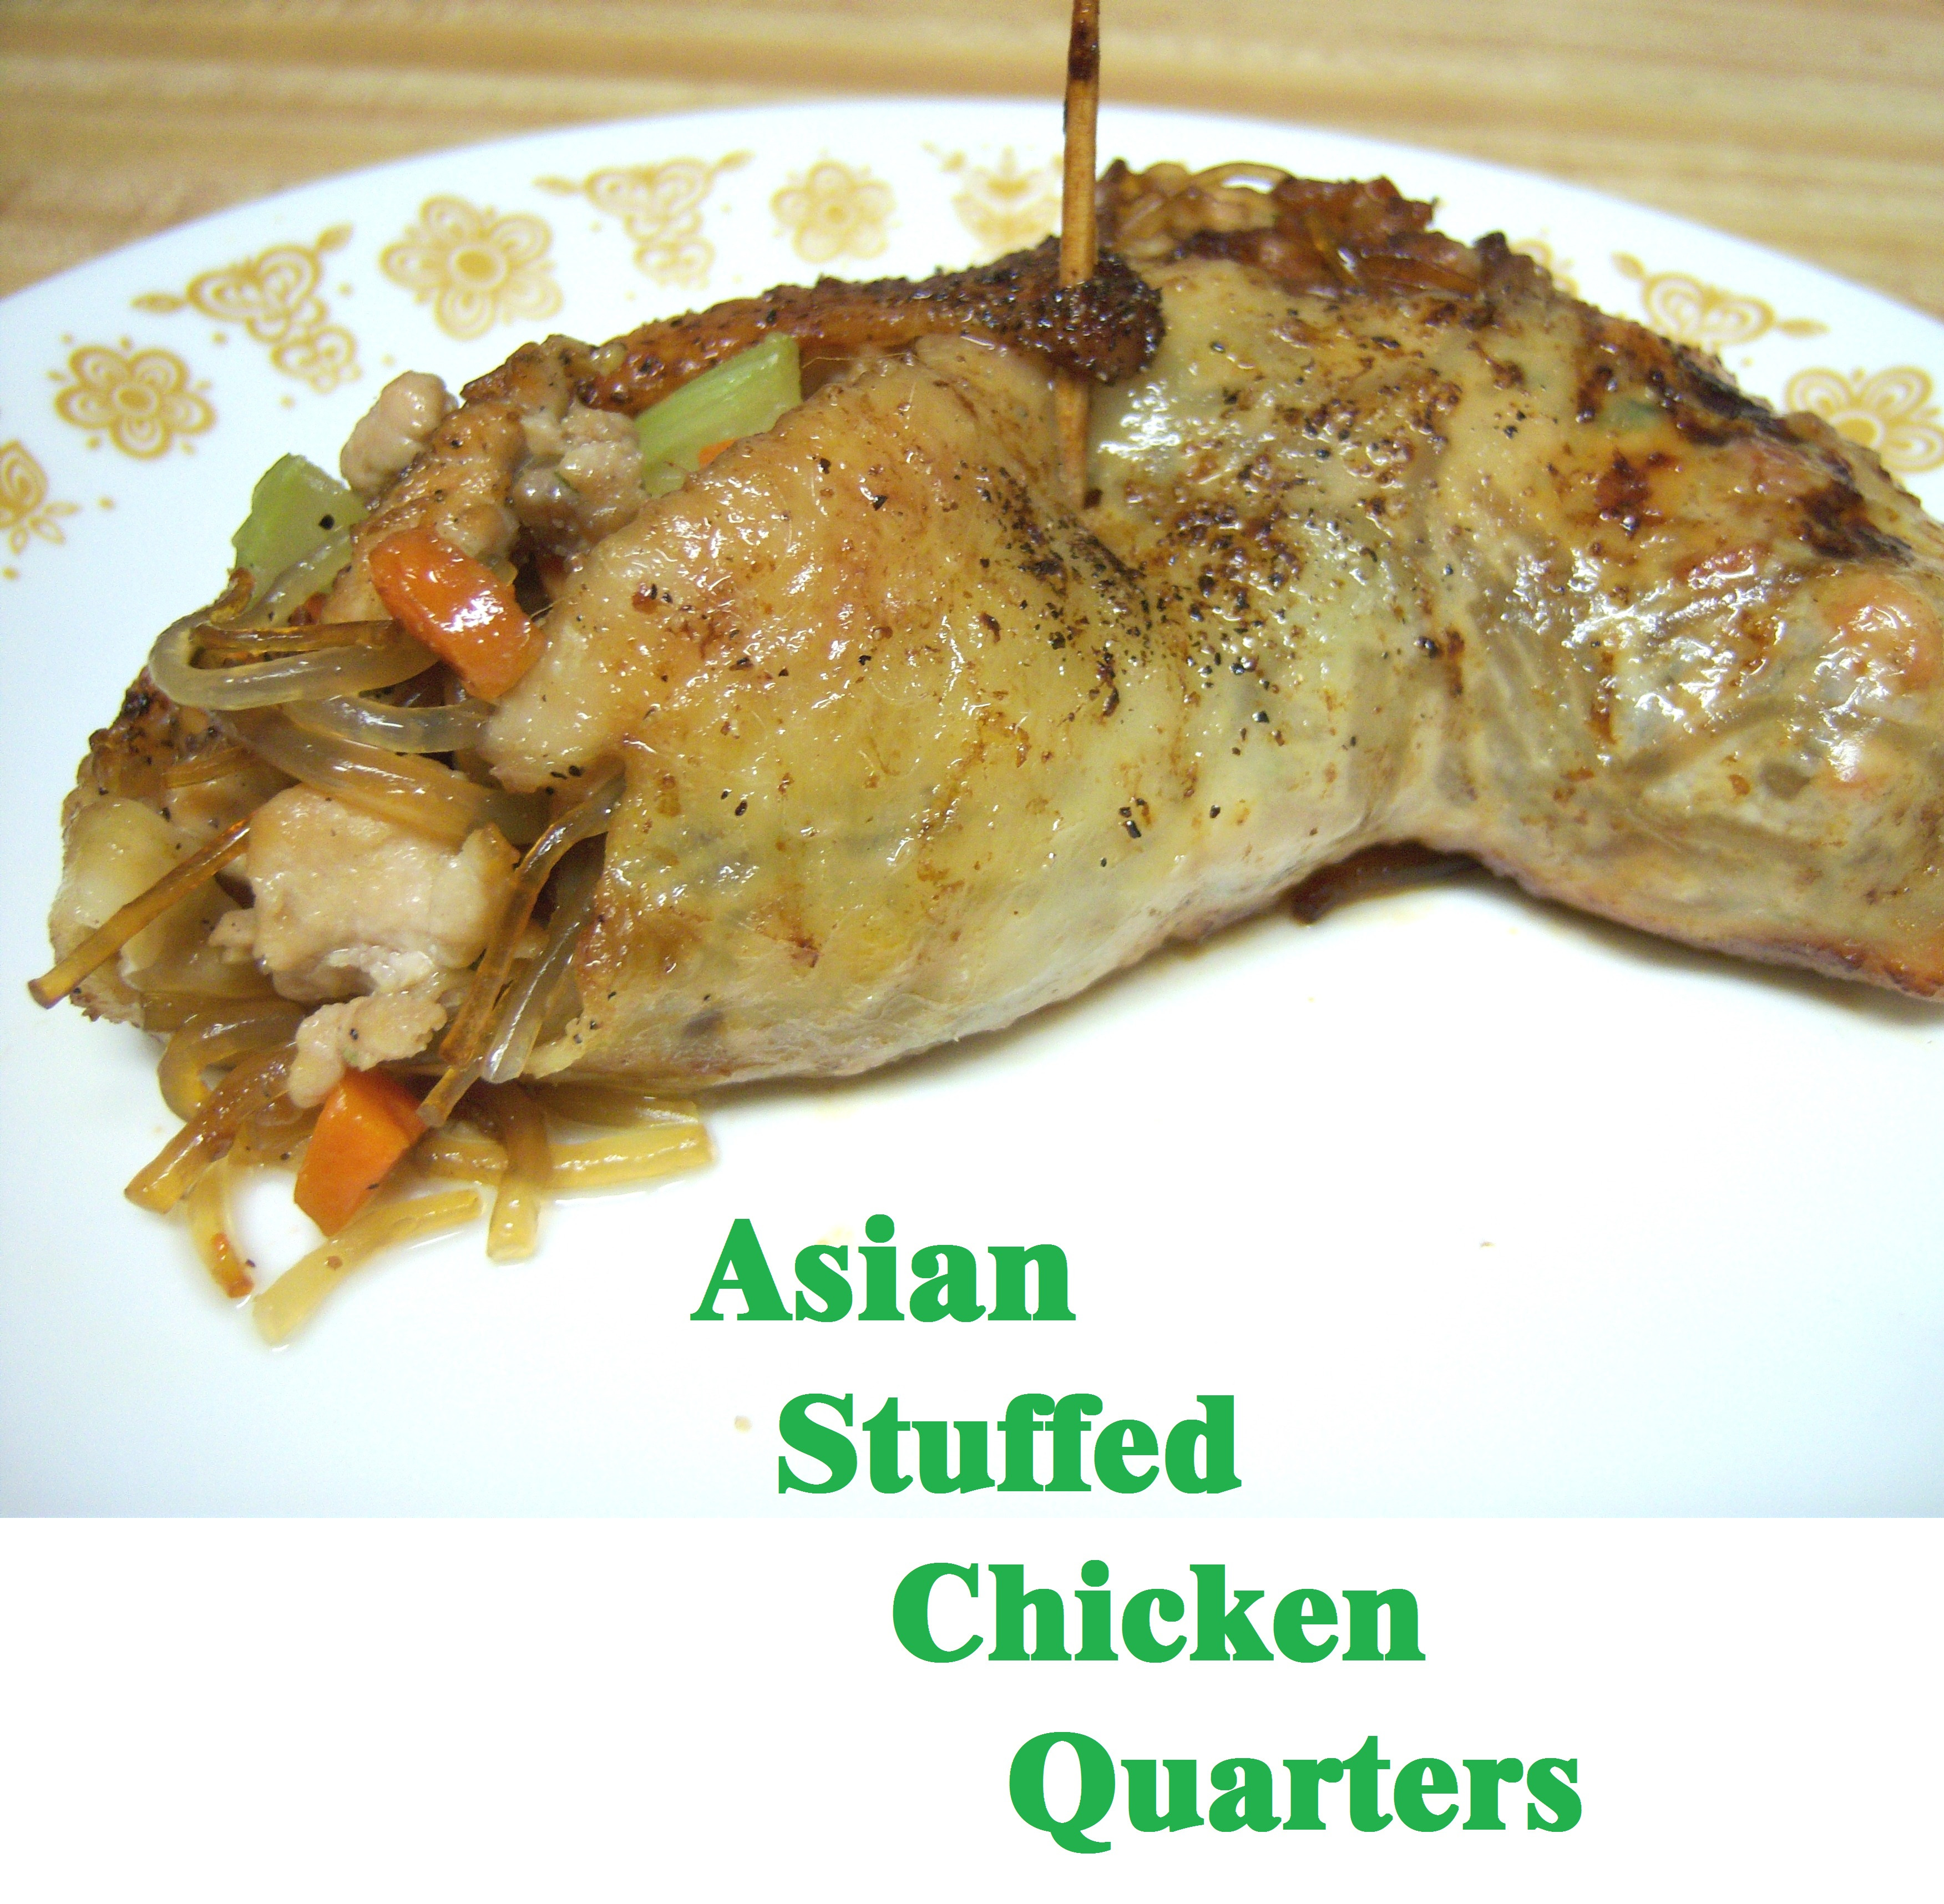 Picture of Asian Stuffed Chicken Quarters